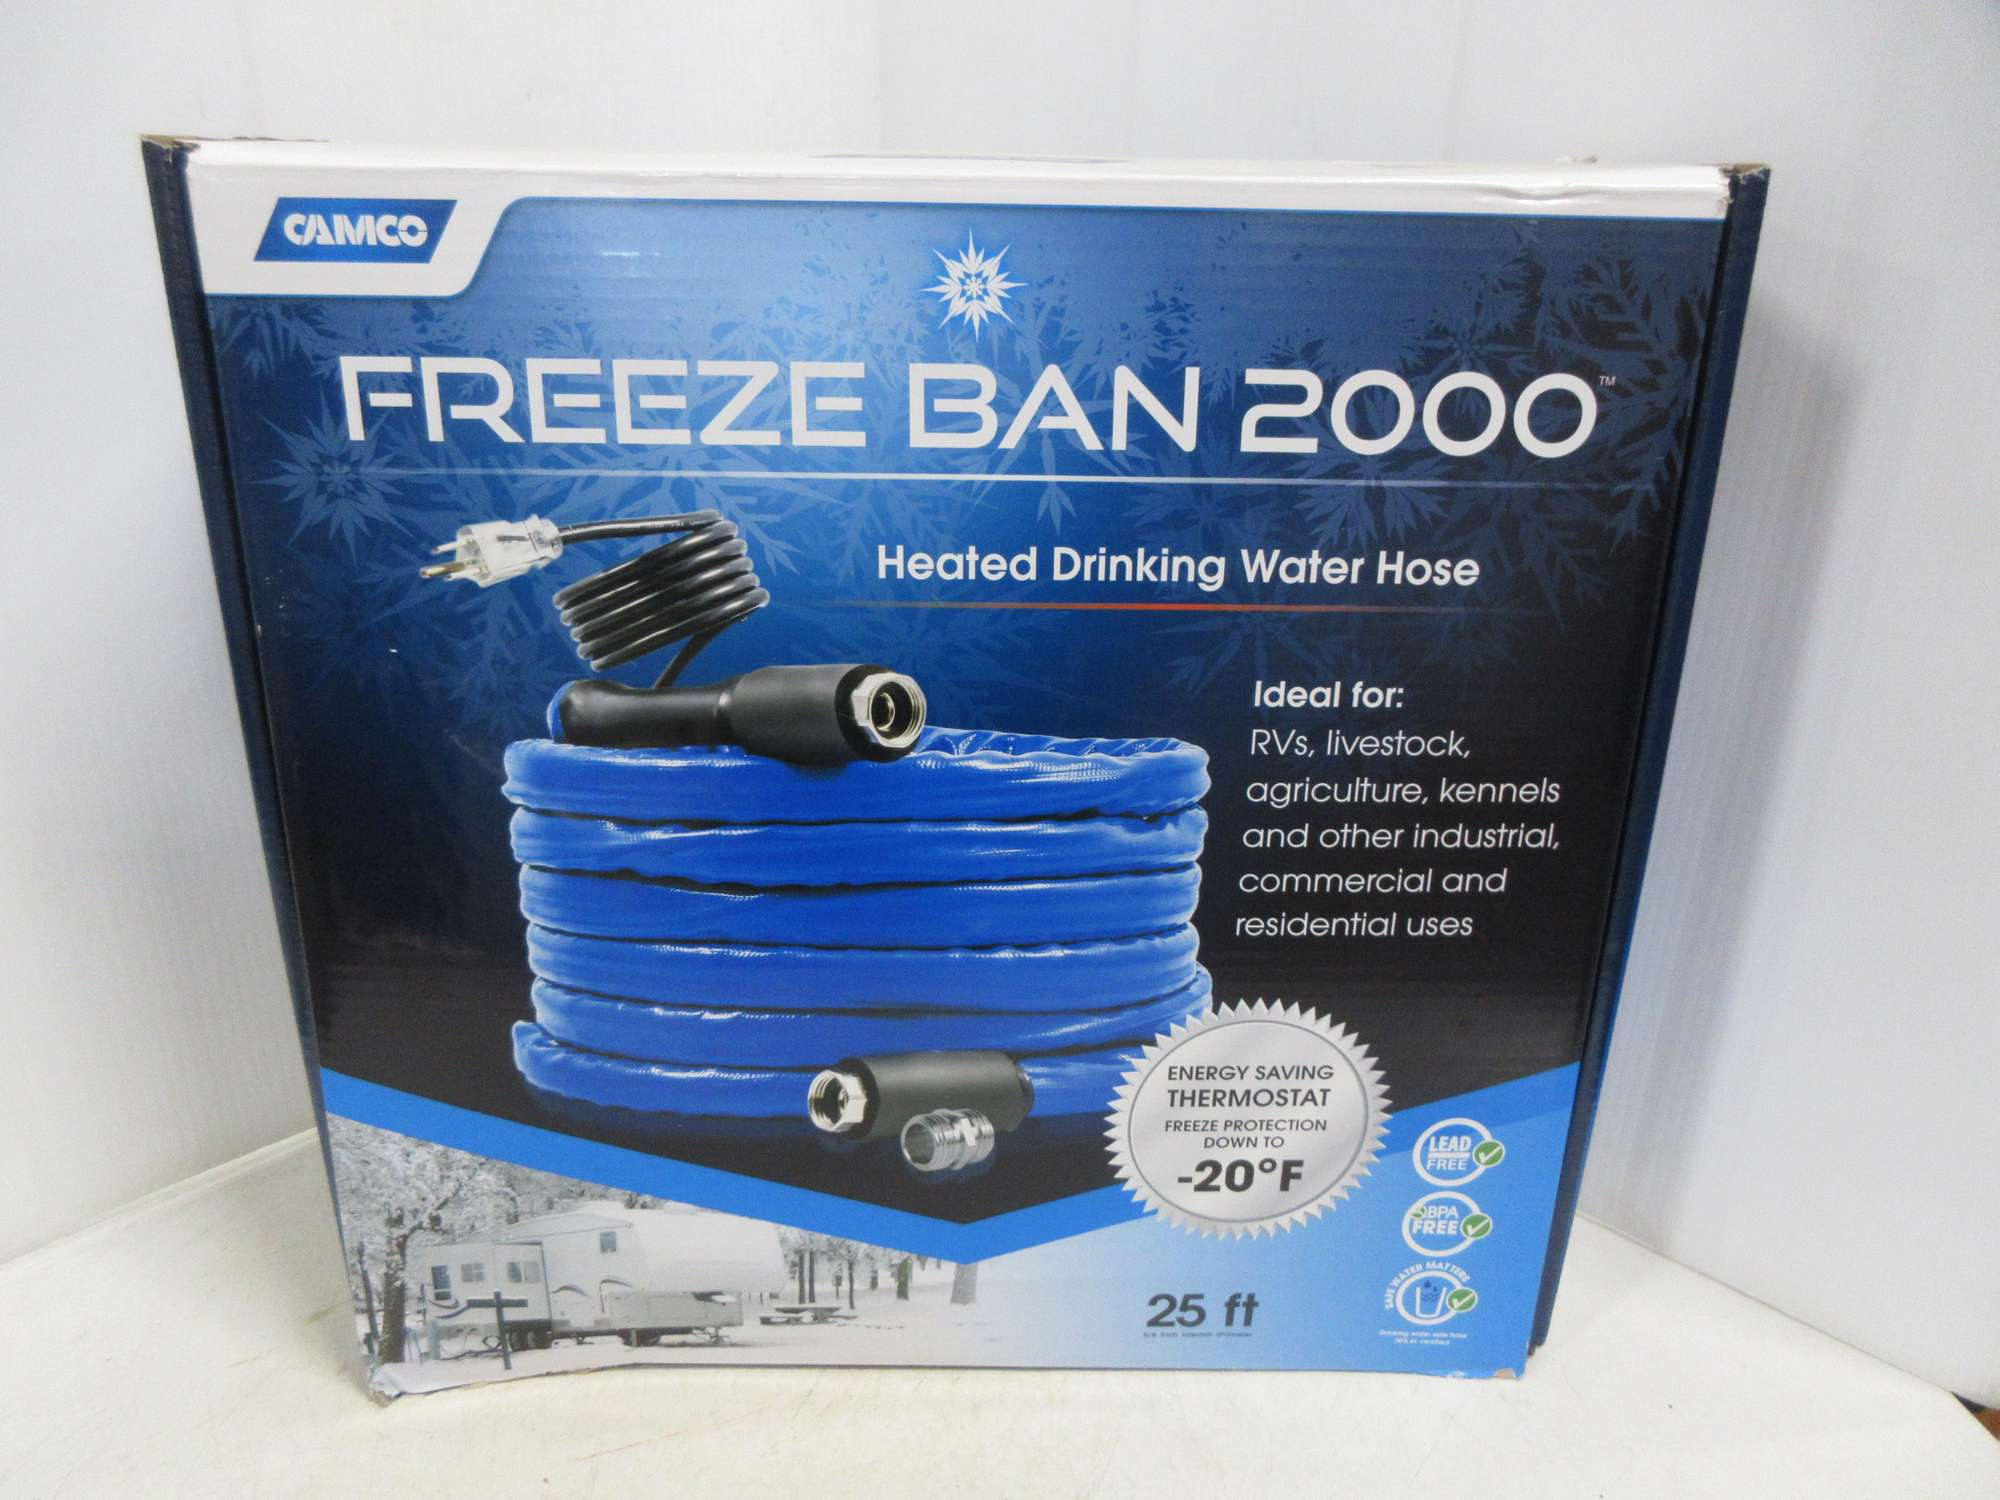 Albrecht Auctions Camco Freeze Ban 2000 Heated Drinking Water Hose